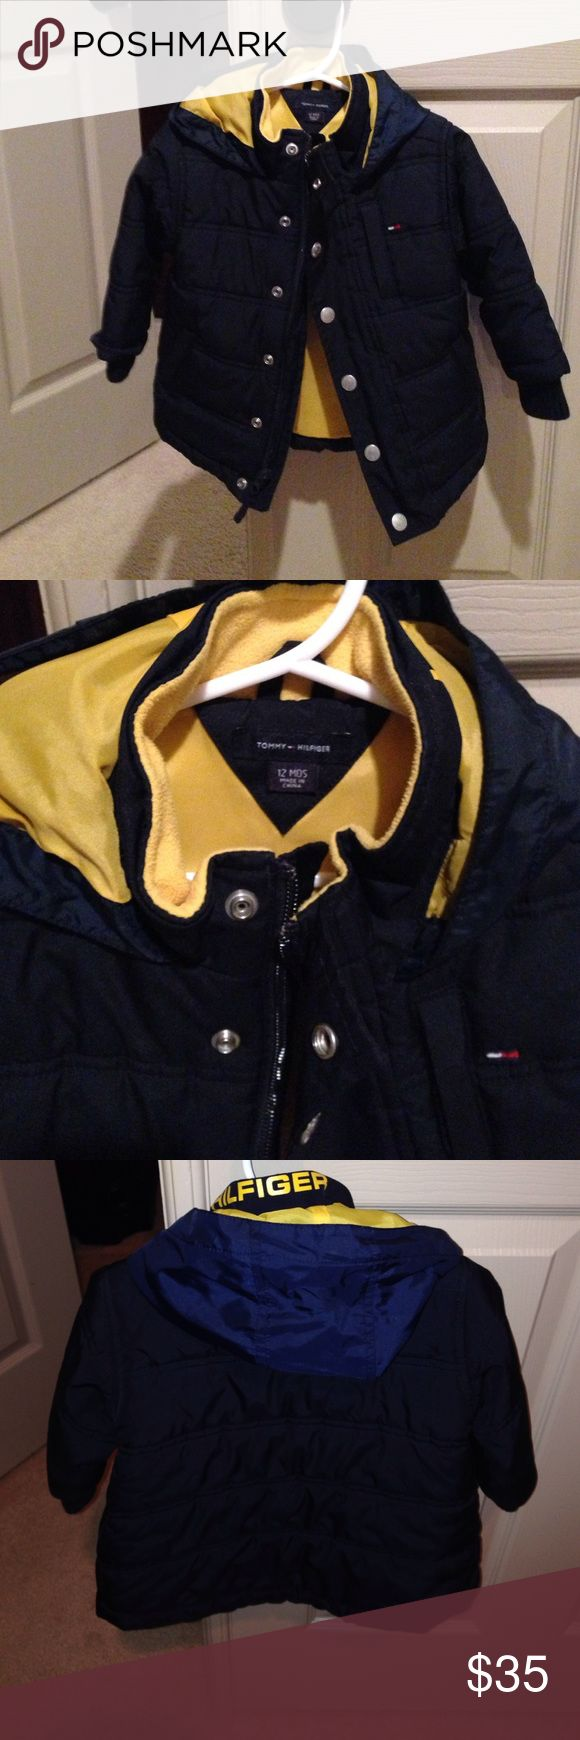 Tommy Hilfiger Boys 12mos winter coat Tommy Hilfiger Navy 12mos boy winter coat in great condition Tommy Hilfiger Jackets & Coats Puffers